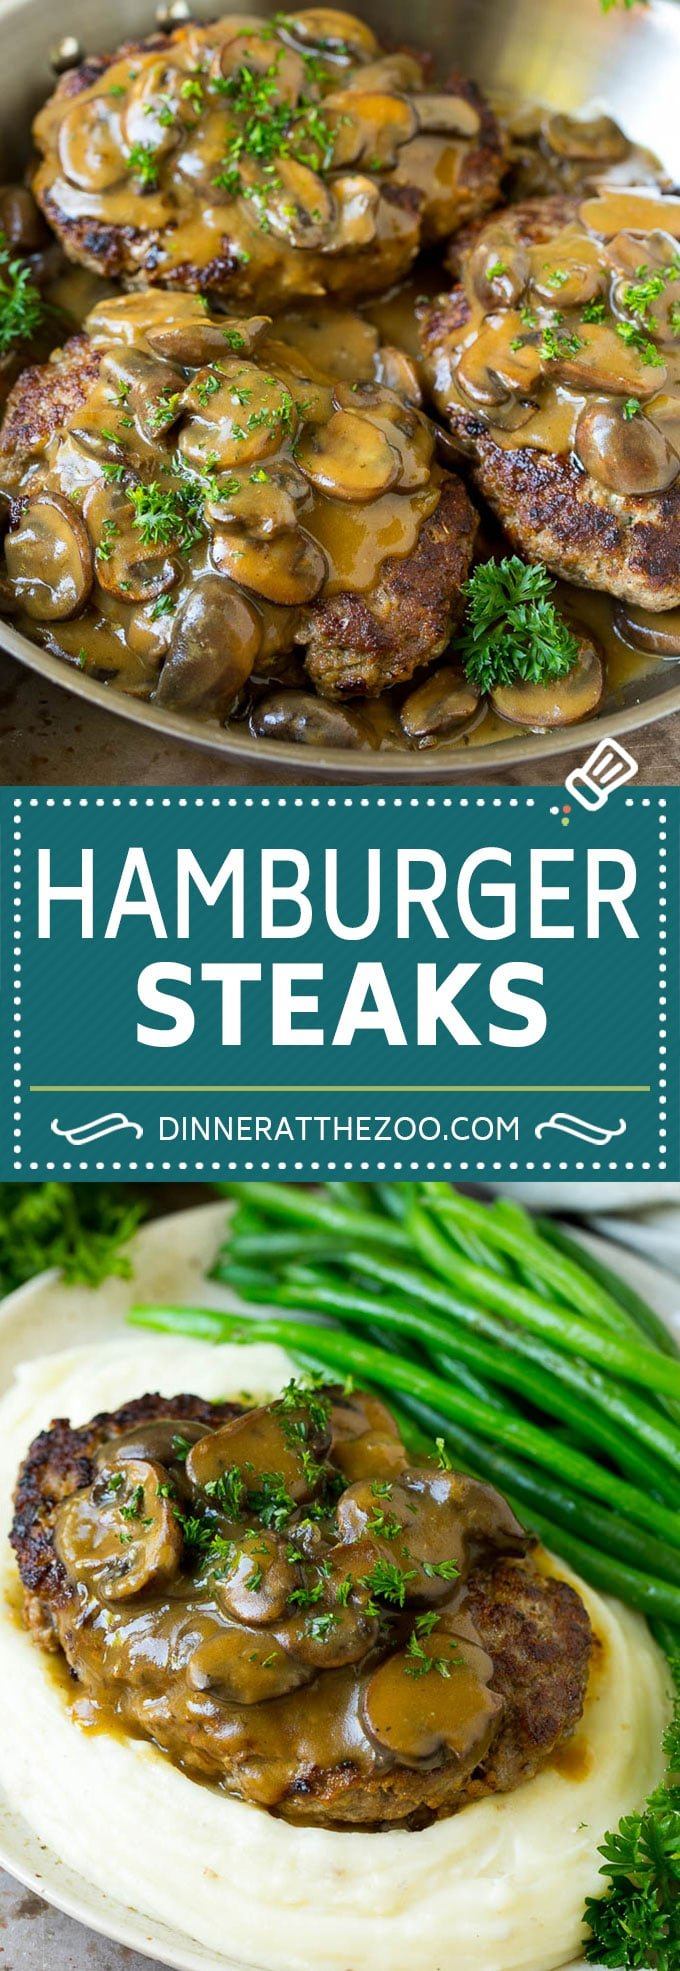 Hamburger Steaks with Mushroom Gravy Recipe | Salisbury Steak #hamburger #groundbeef #mushrooms #gravy #dinner #dinneratthezoo